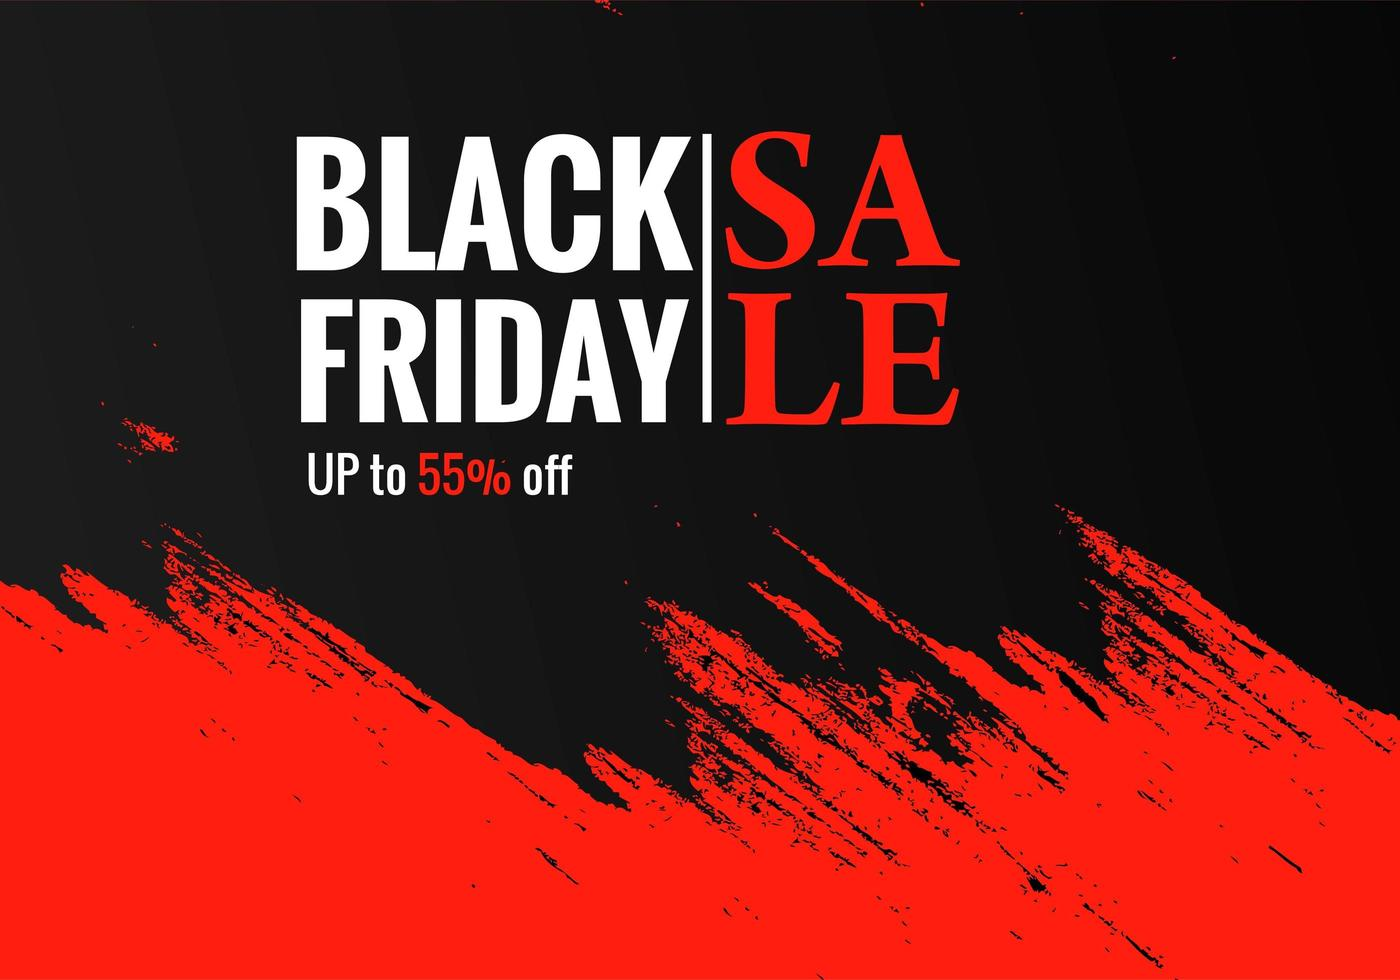 Black Friday Sale Poster on a Hand Brush Stroke Background vector